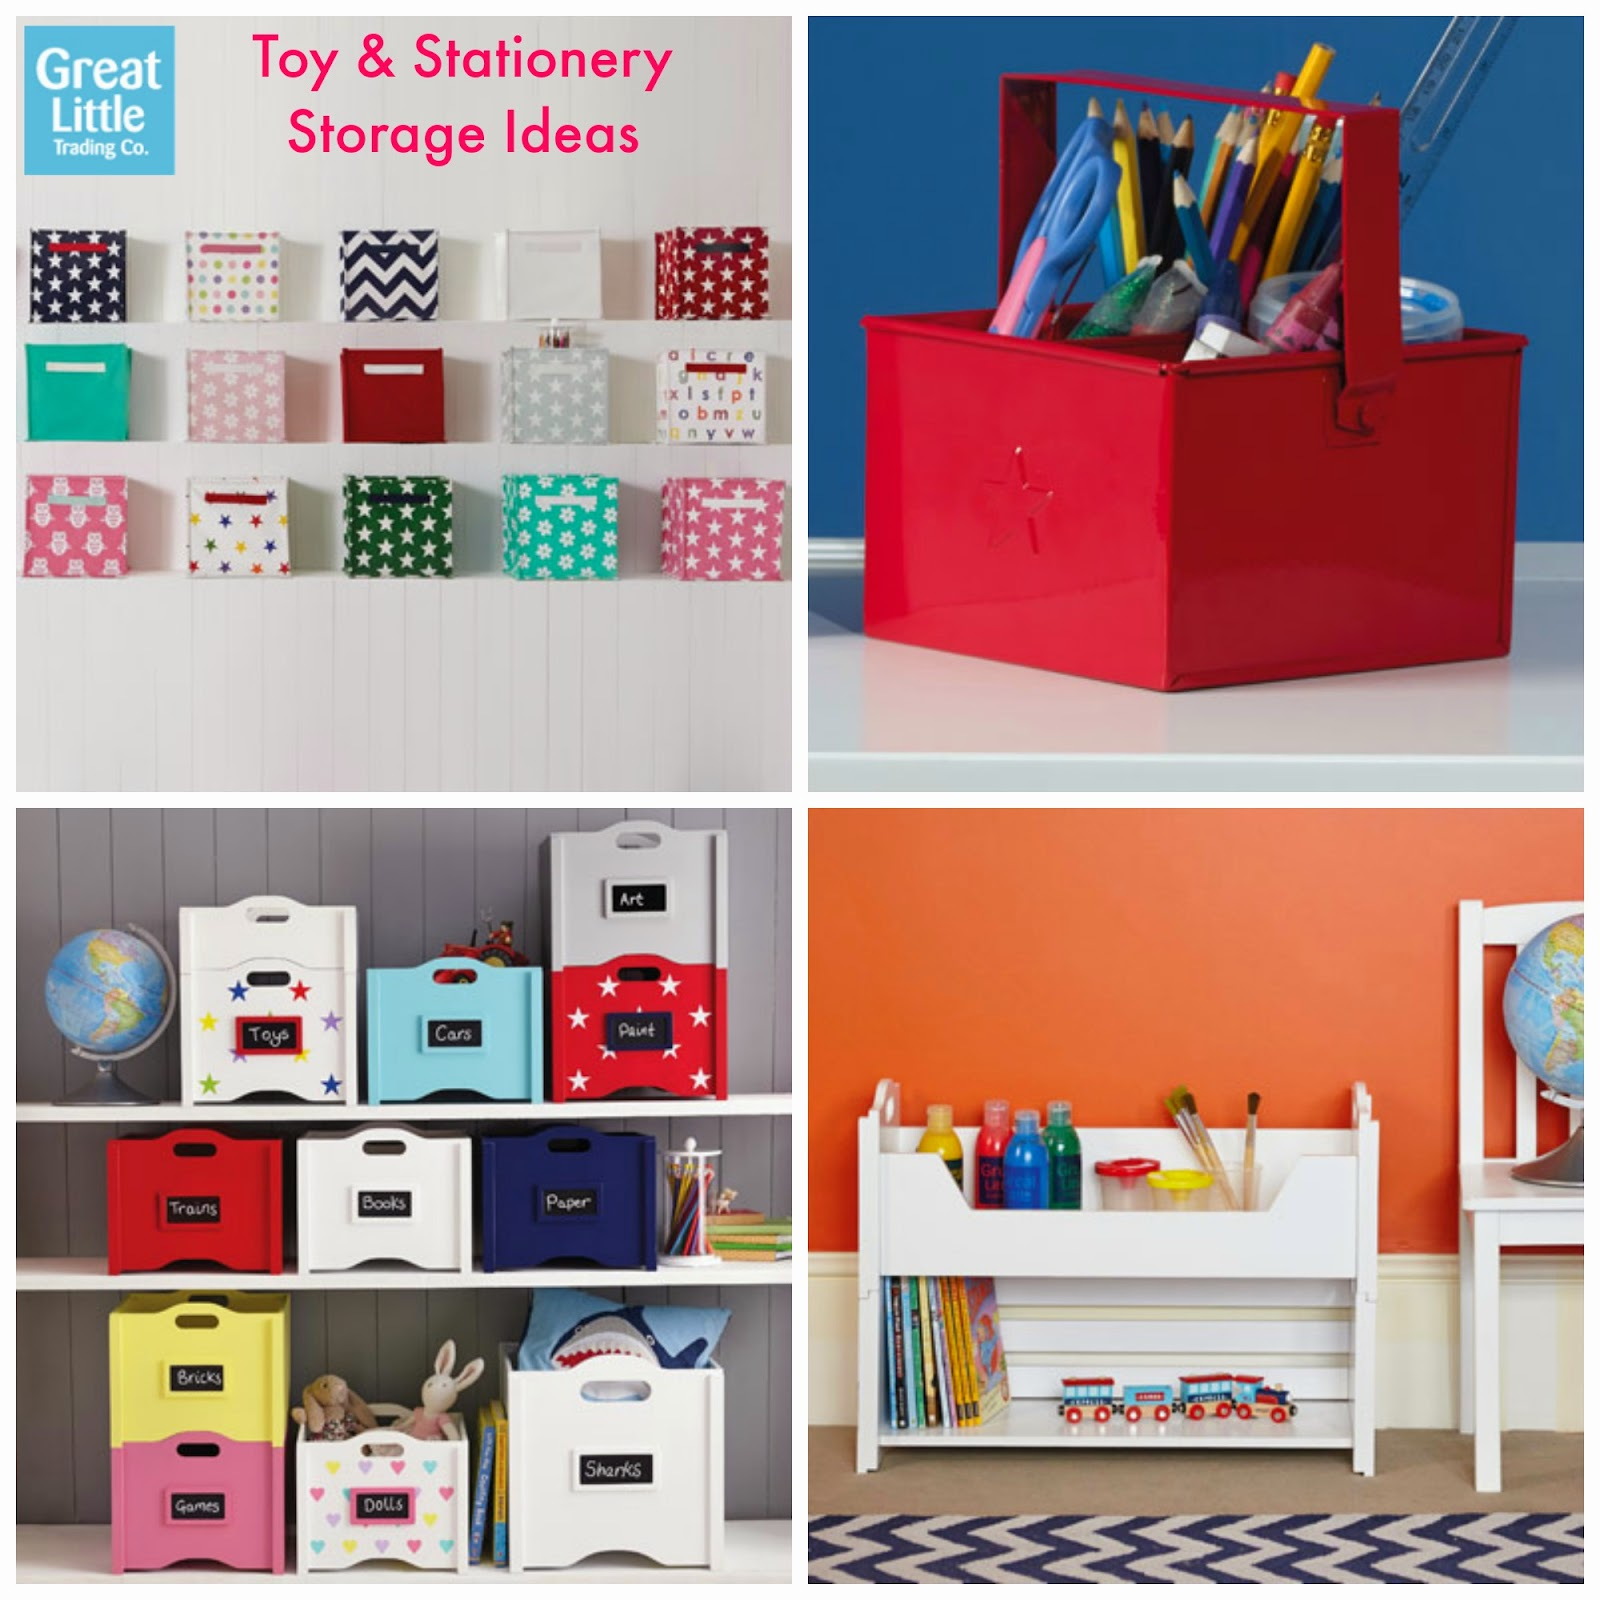 , Savings on Toy Storage / Great Little Trading Co.